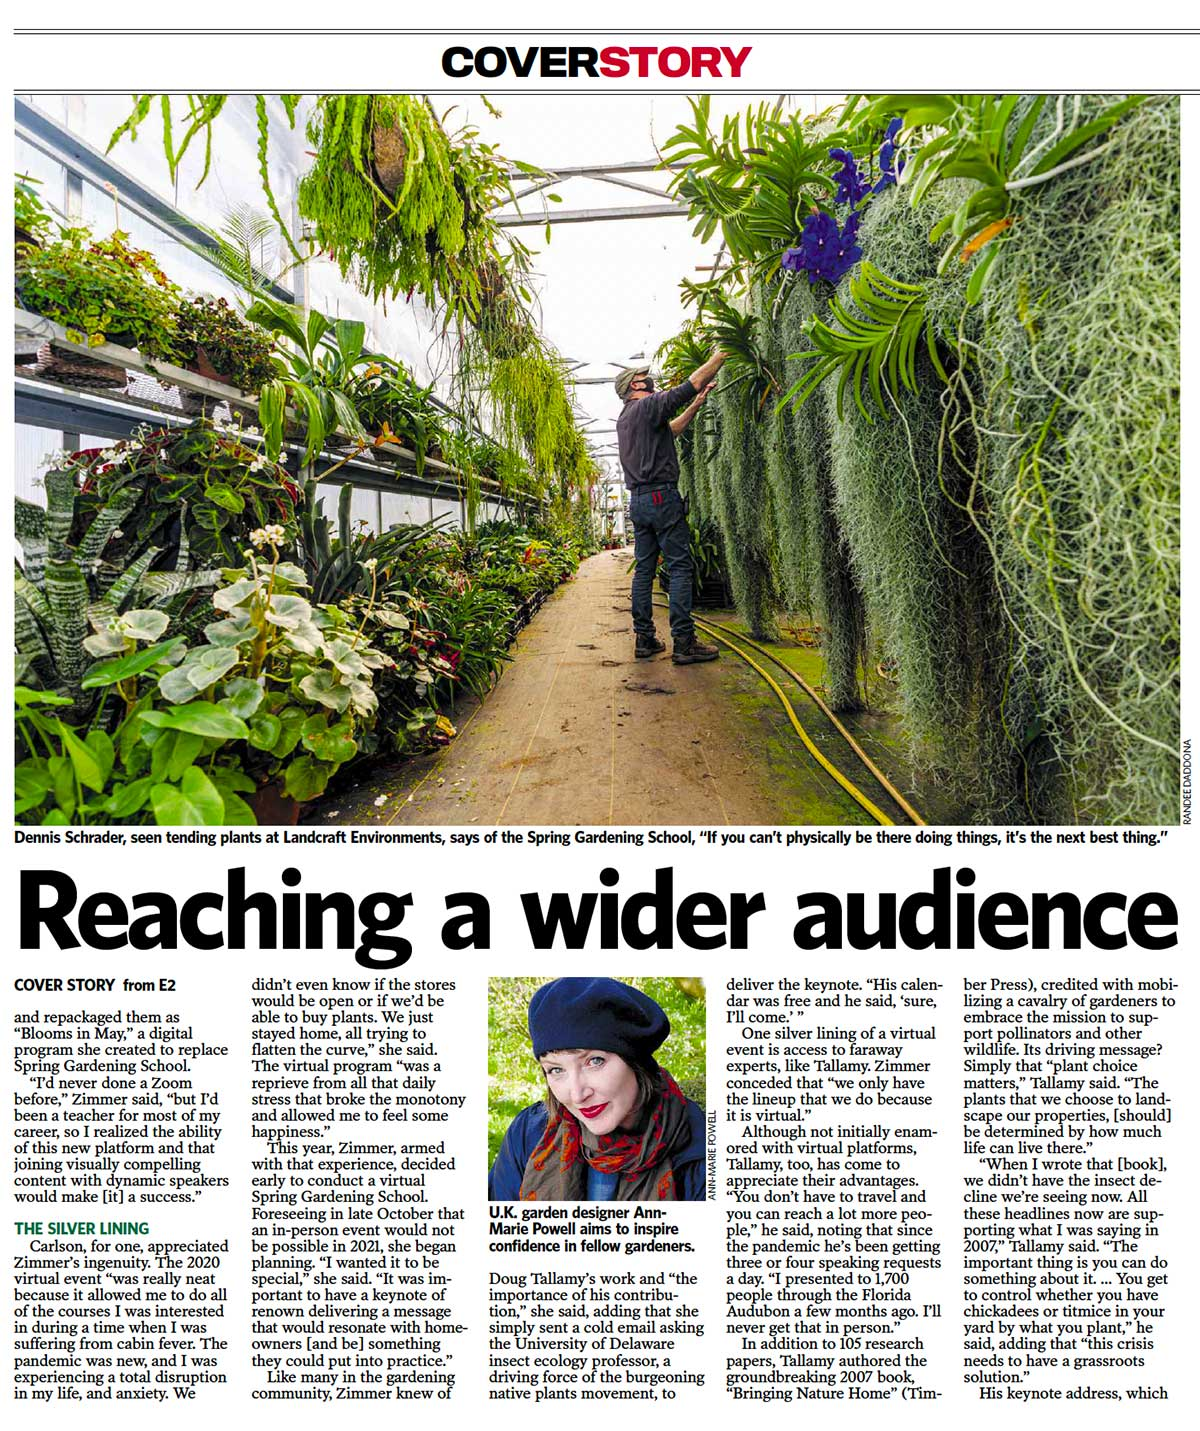 Designer Ann-Marie Powell from Petersfield, Hampshire garden features in Newsday.